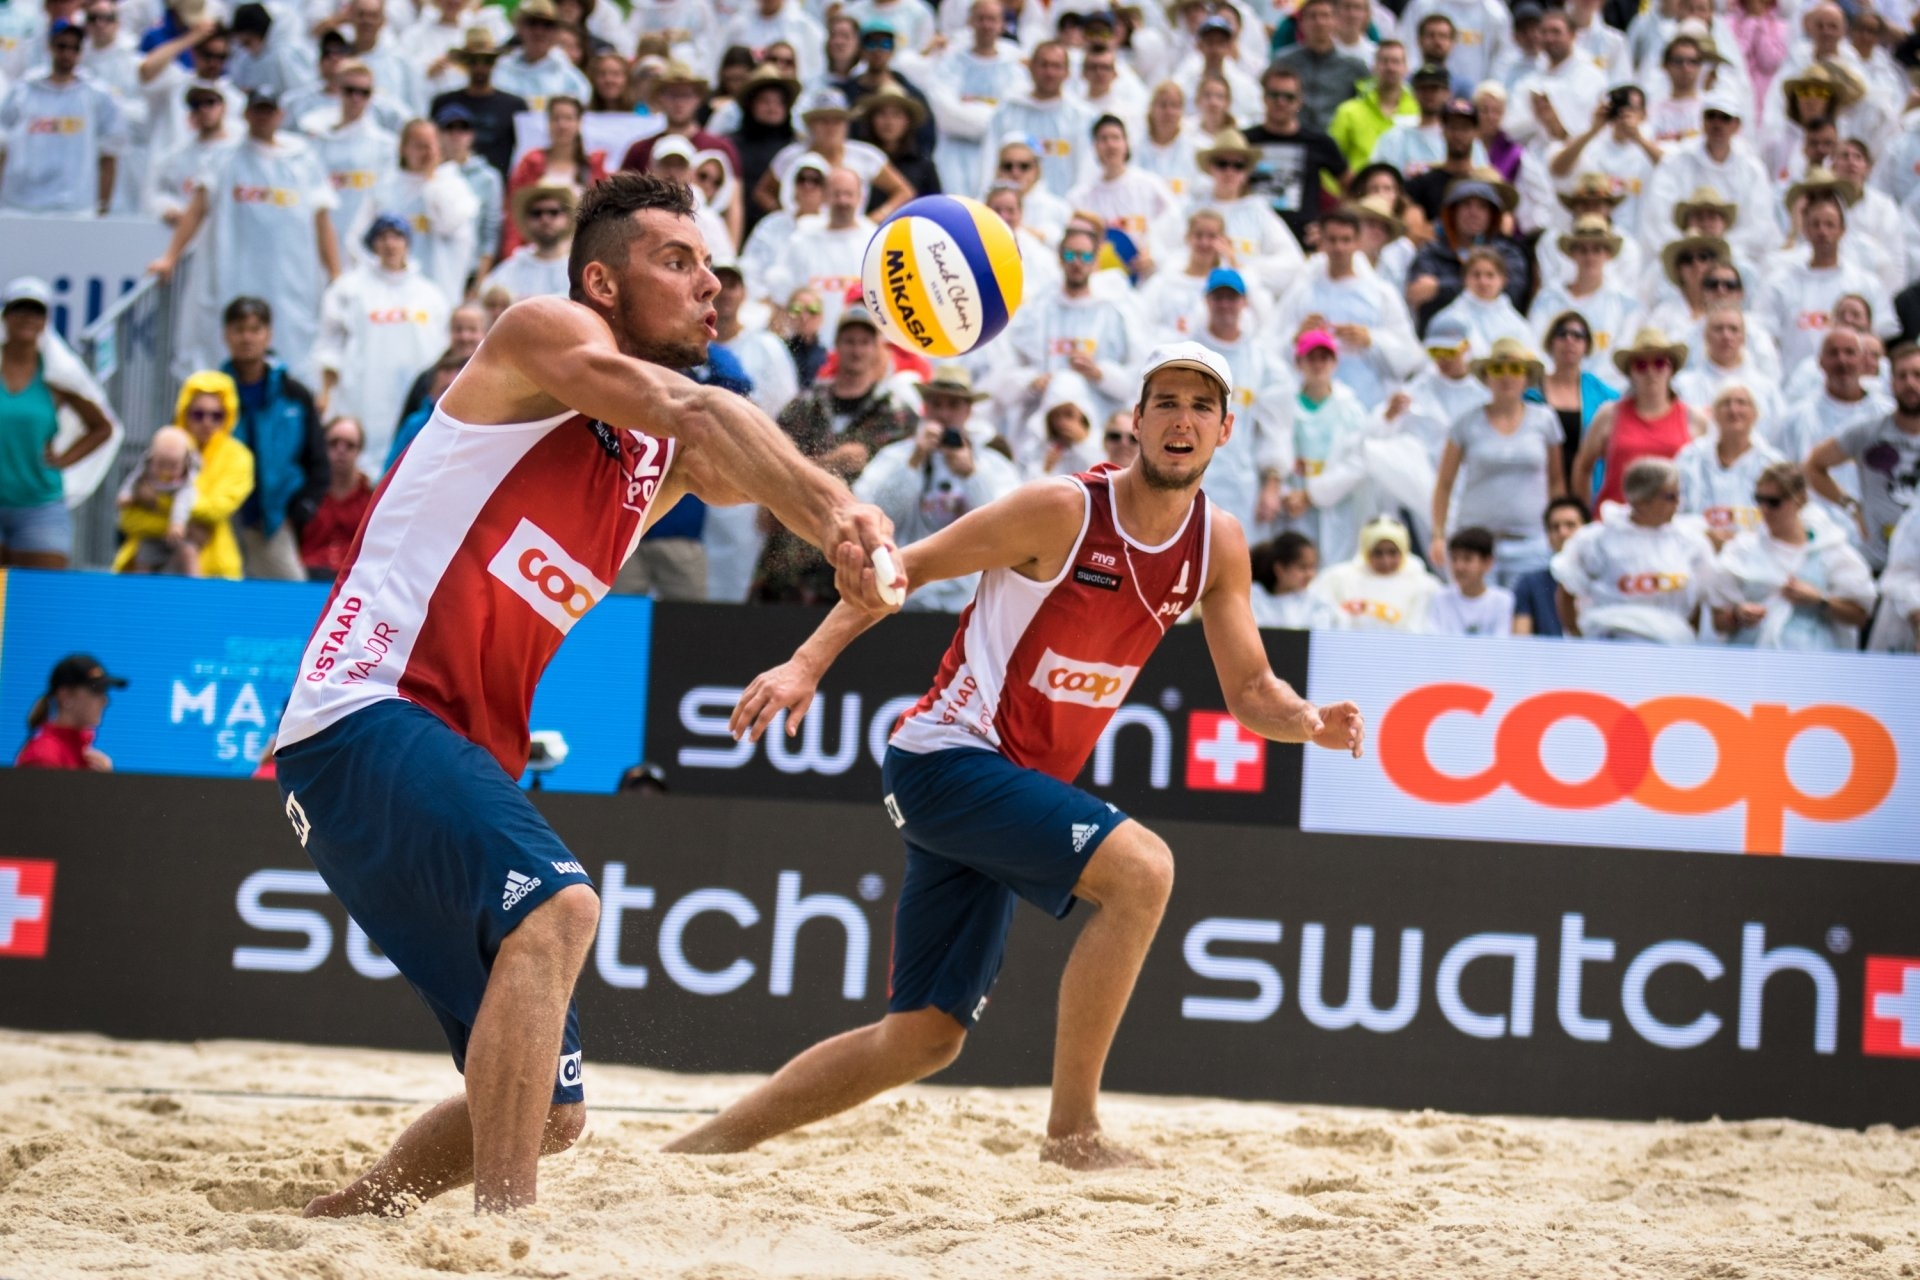 Kantor and Losiak won silver last year in Gstaad losing to Lucena and Dalhausser in the final